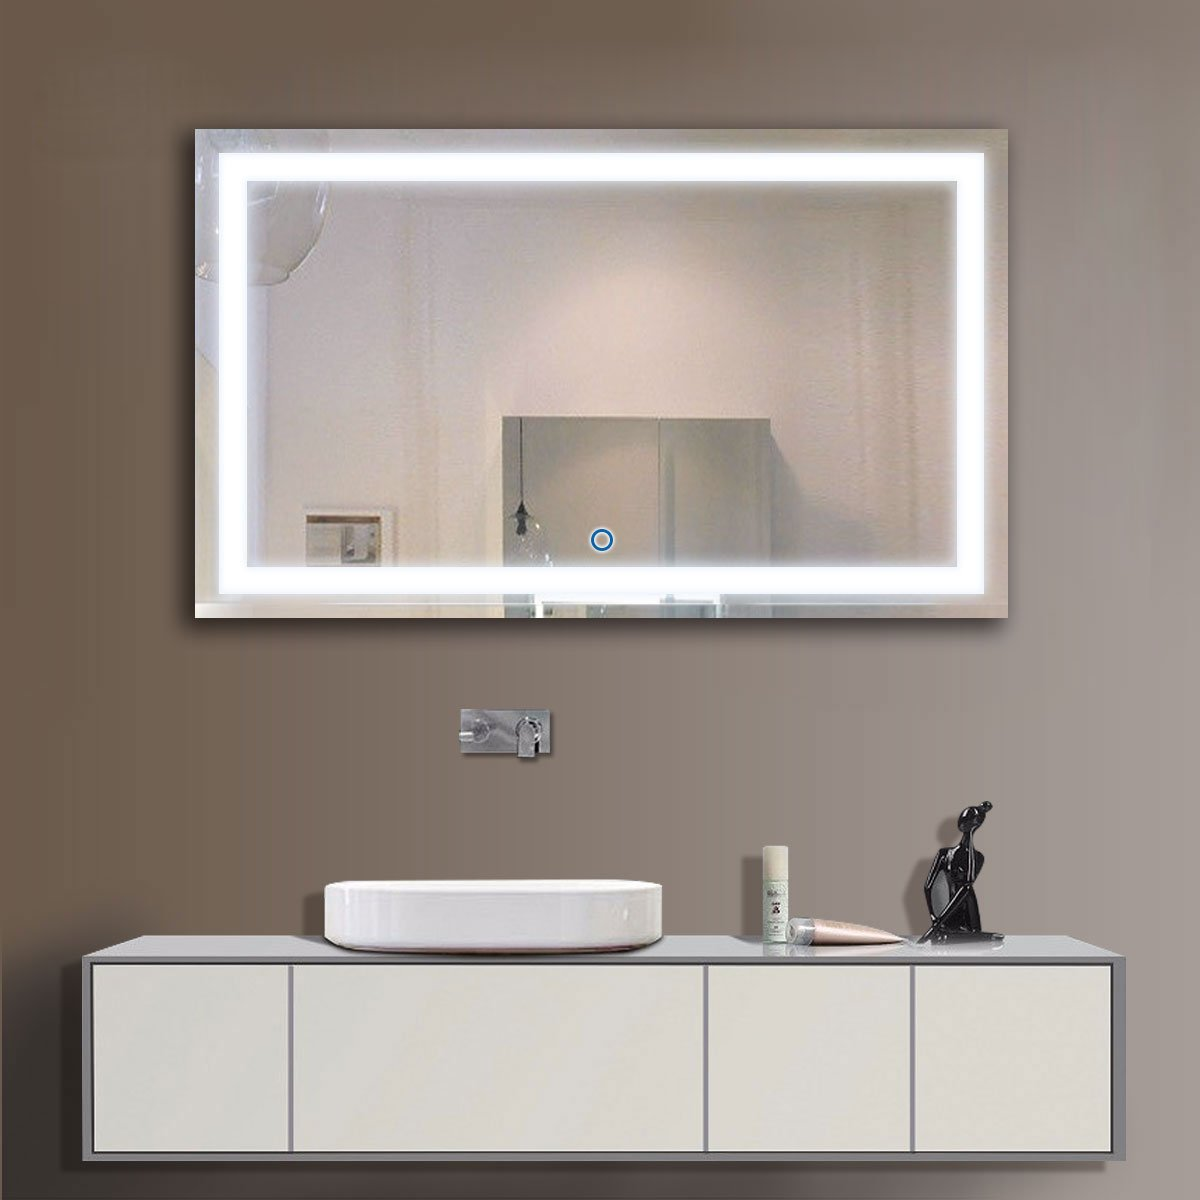 40 x 24 In Horizontal LED Bathroom Silvered Mirror with Touch Button (CK010-G) by BHBL